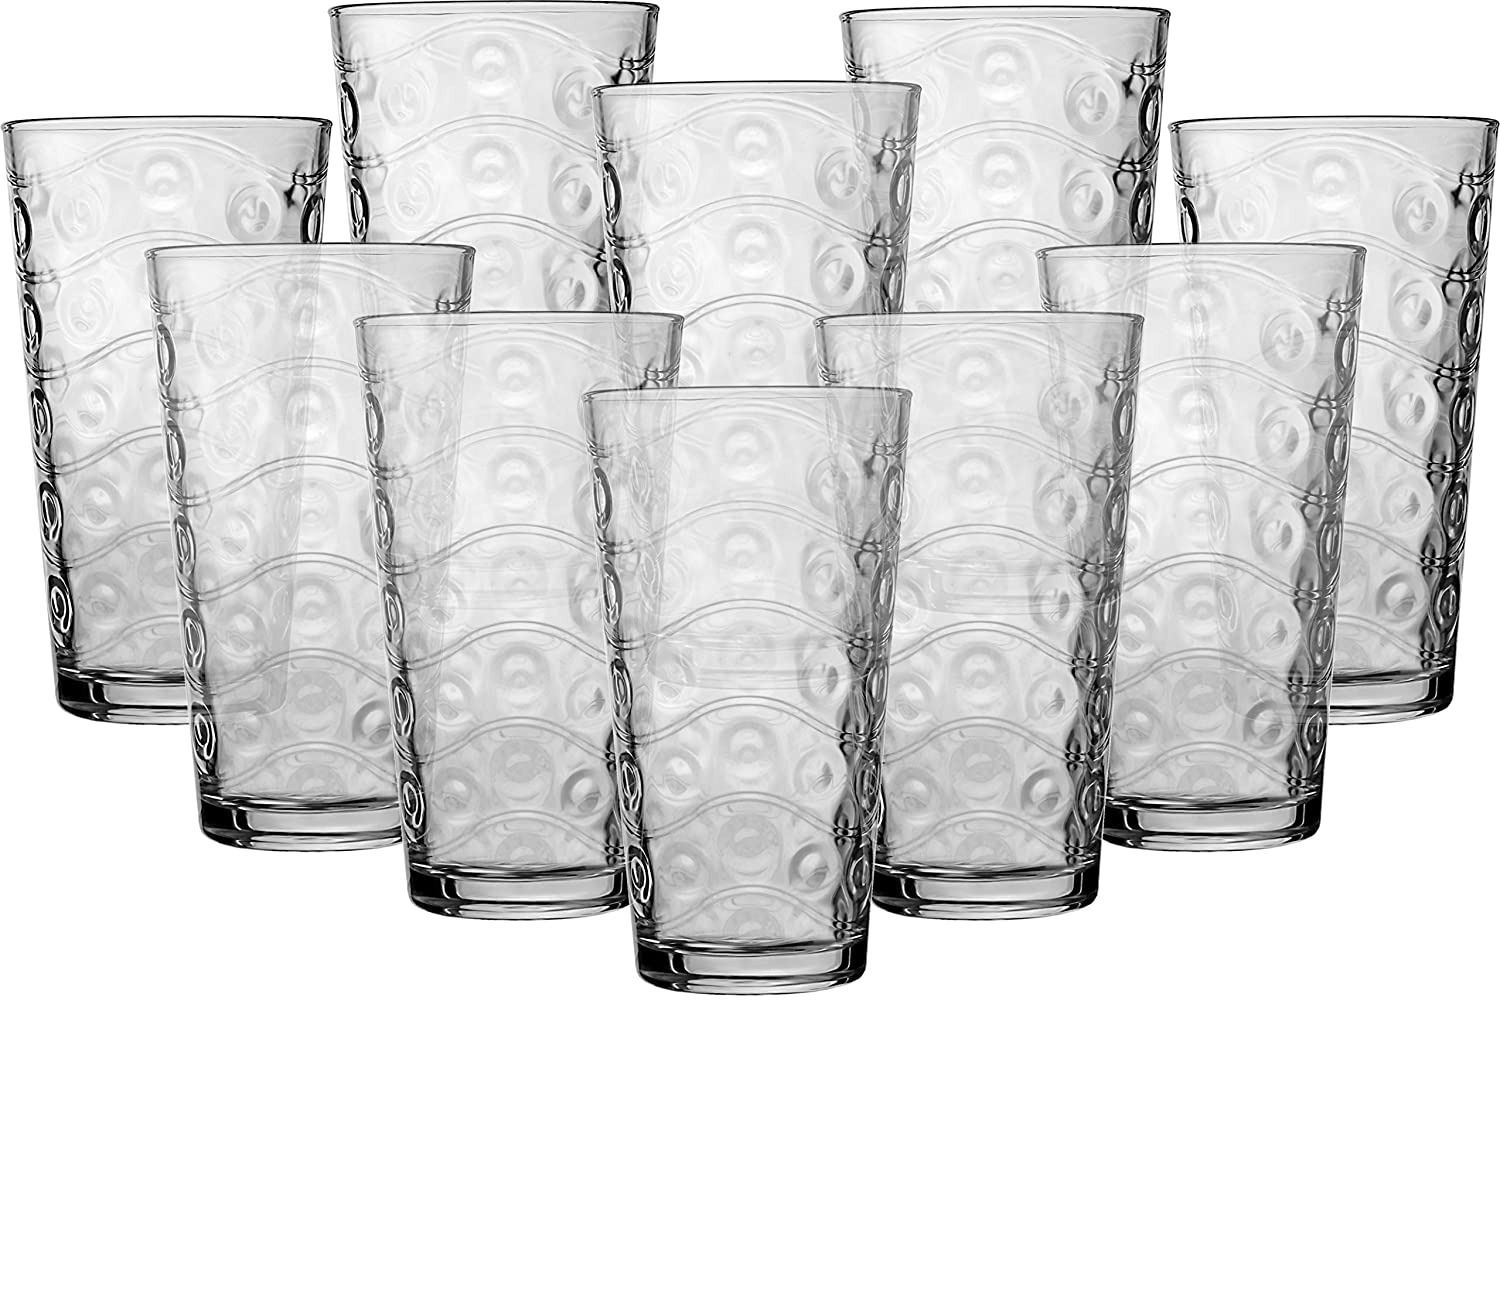 Circleware 40176 Cosmo Set of 10 Highball Tumbler Drinking Glasses, Heavy Base Ice Tea Beverage Cups Glassware for Water, Beer, Juice 15.7 oz 10pc